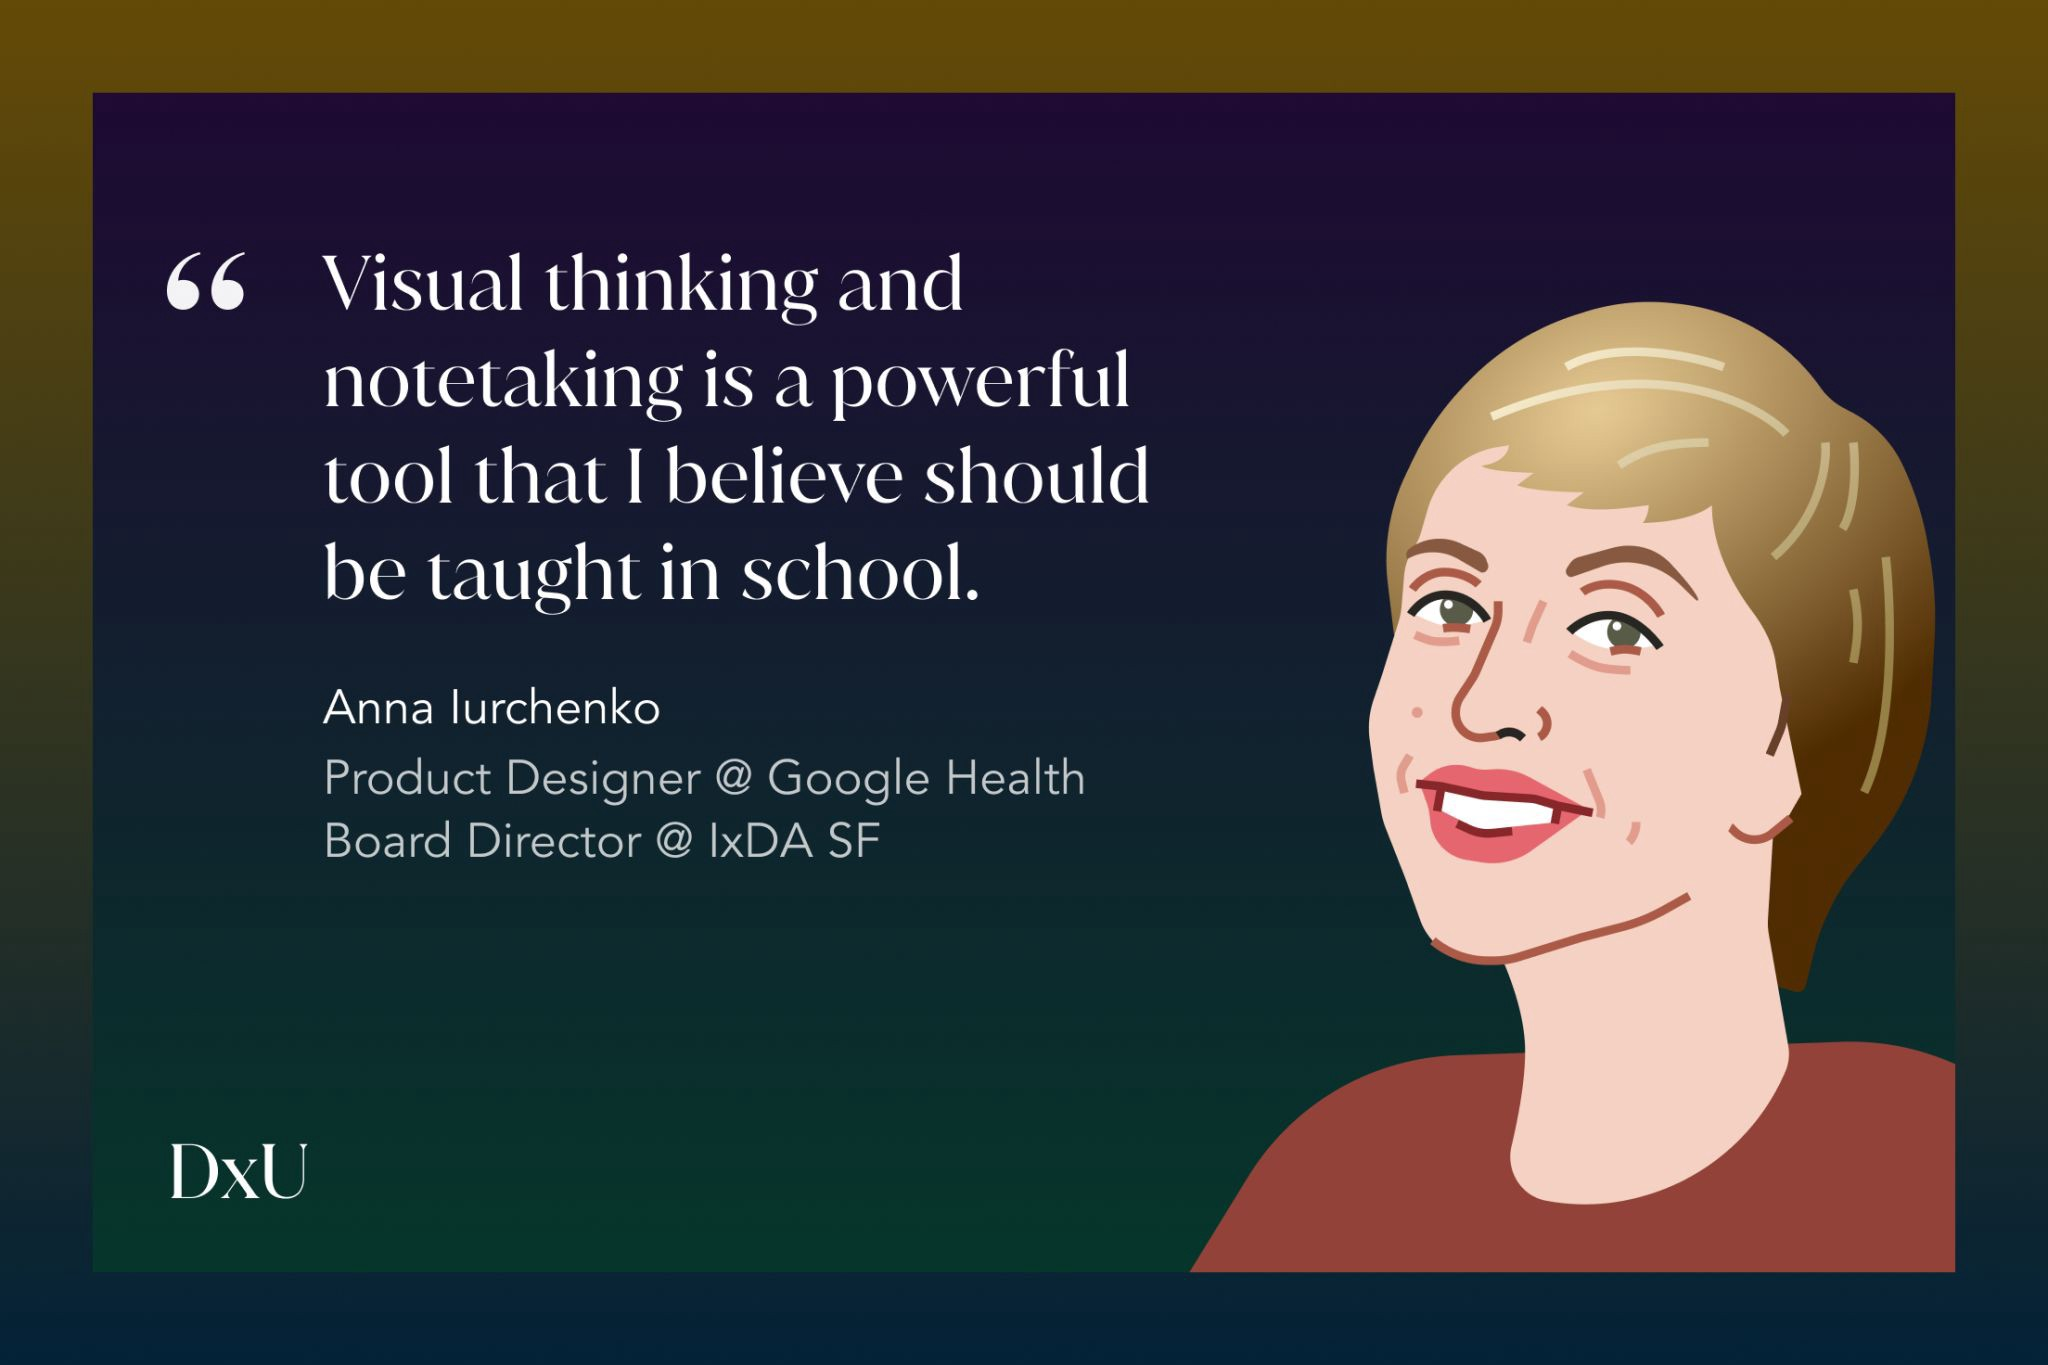 Visual thinking and notetaking is a powerful tool that I believe should be taught in school. Anna Iurchenko, Product Designer at Google Health